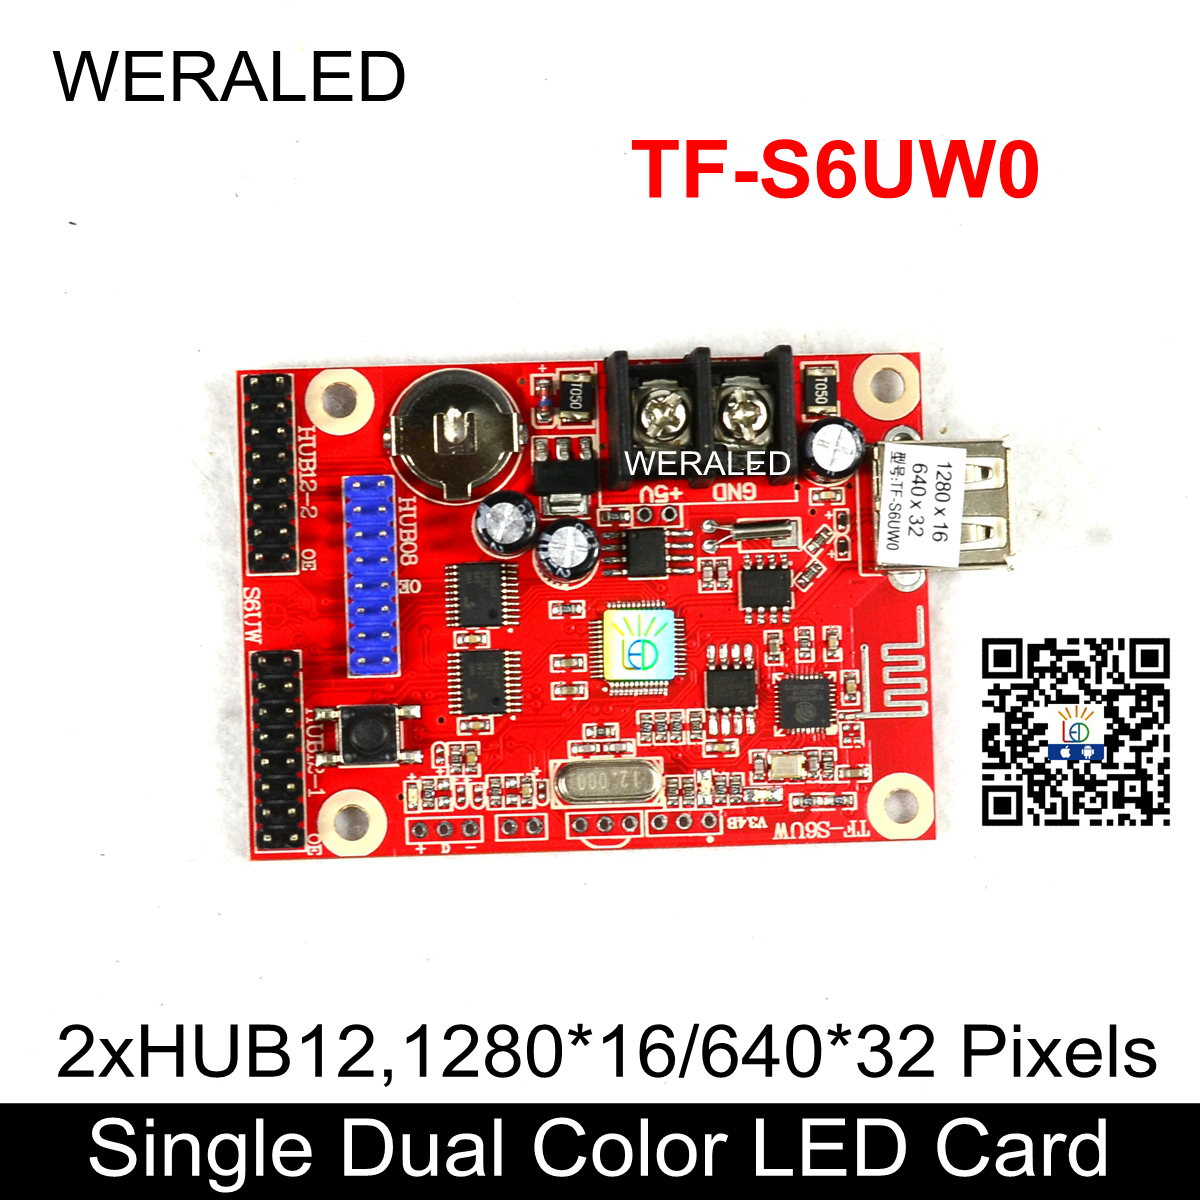 Aliexpress Hot Selling TF-S6UW0 P10 LED Module Panel LED Message Signboard Control Card,USB-DISK & WIFI Wireless P10 Controller